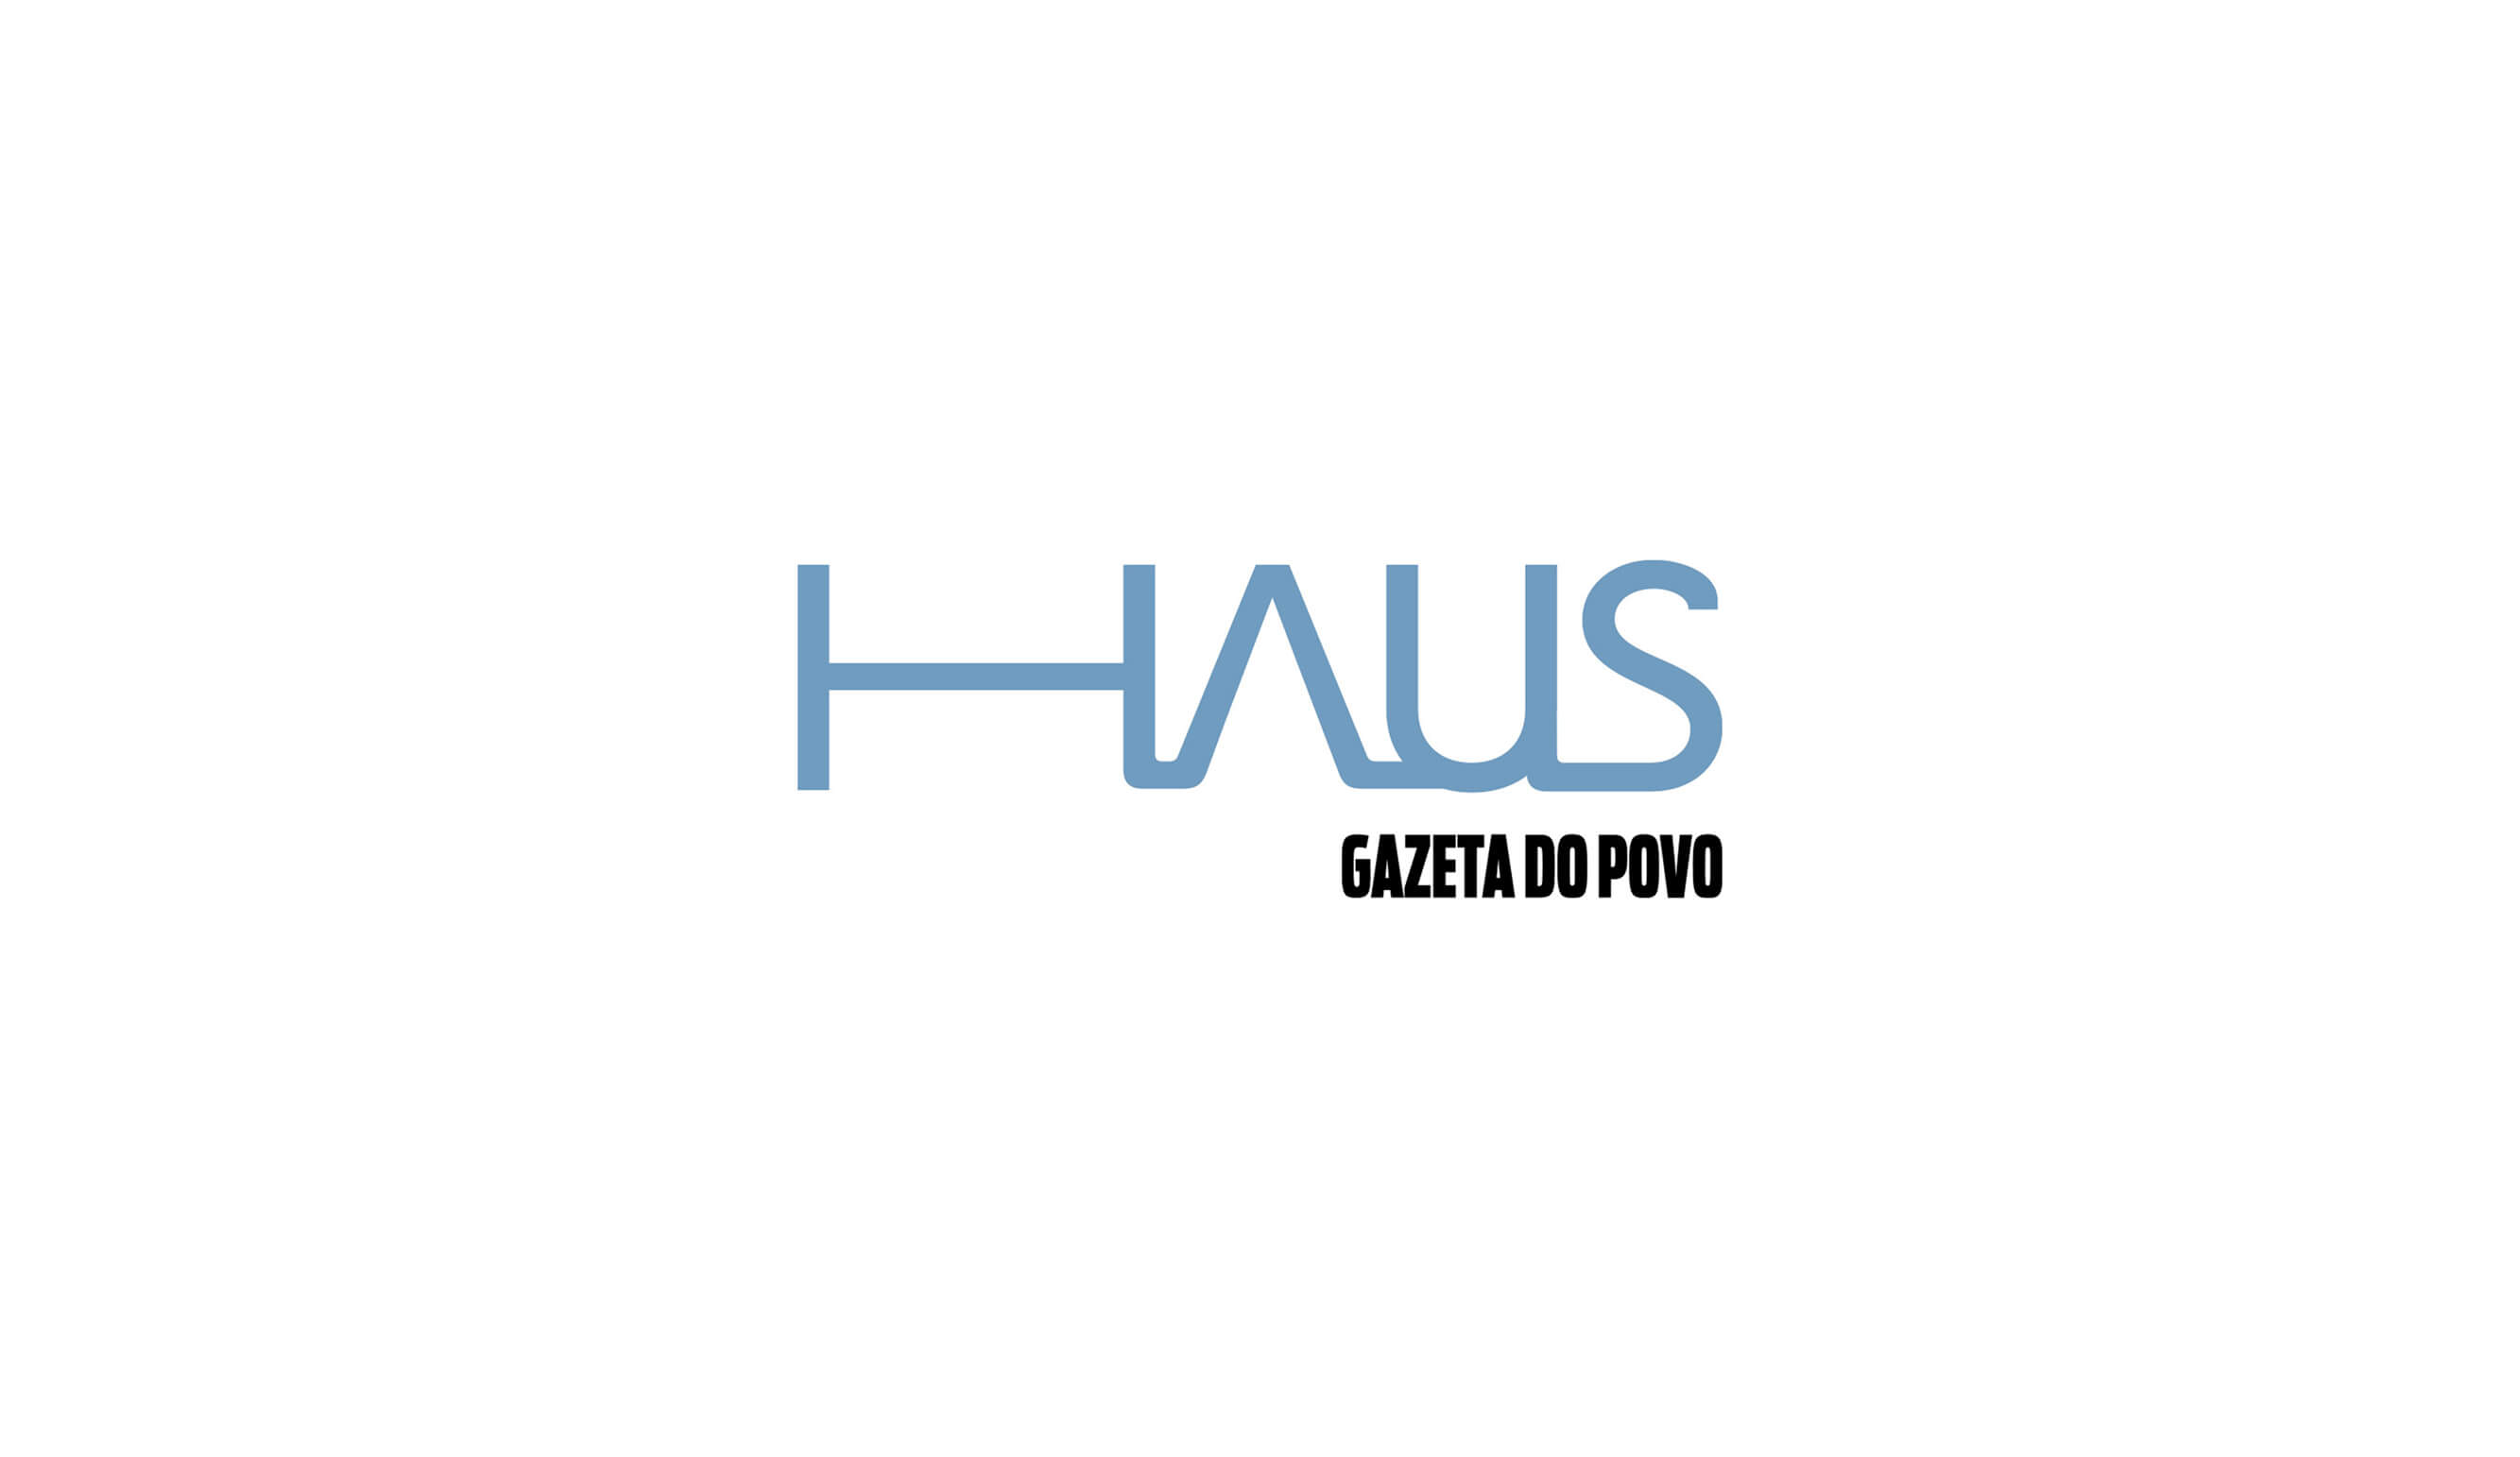 talheres O2 gazeta do povo alma design